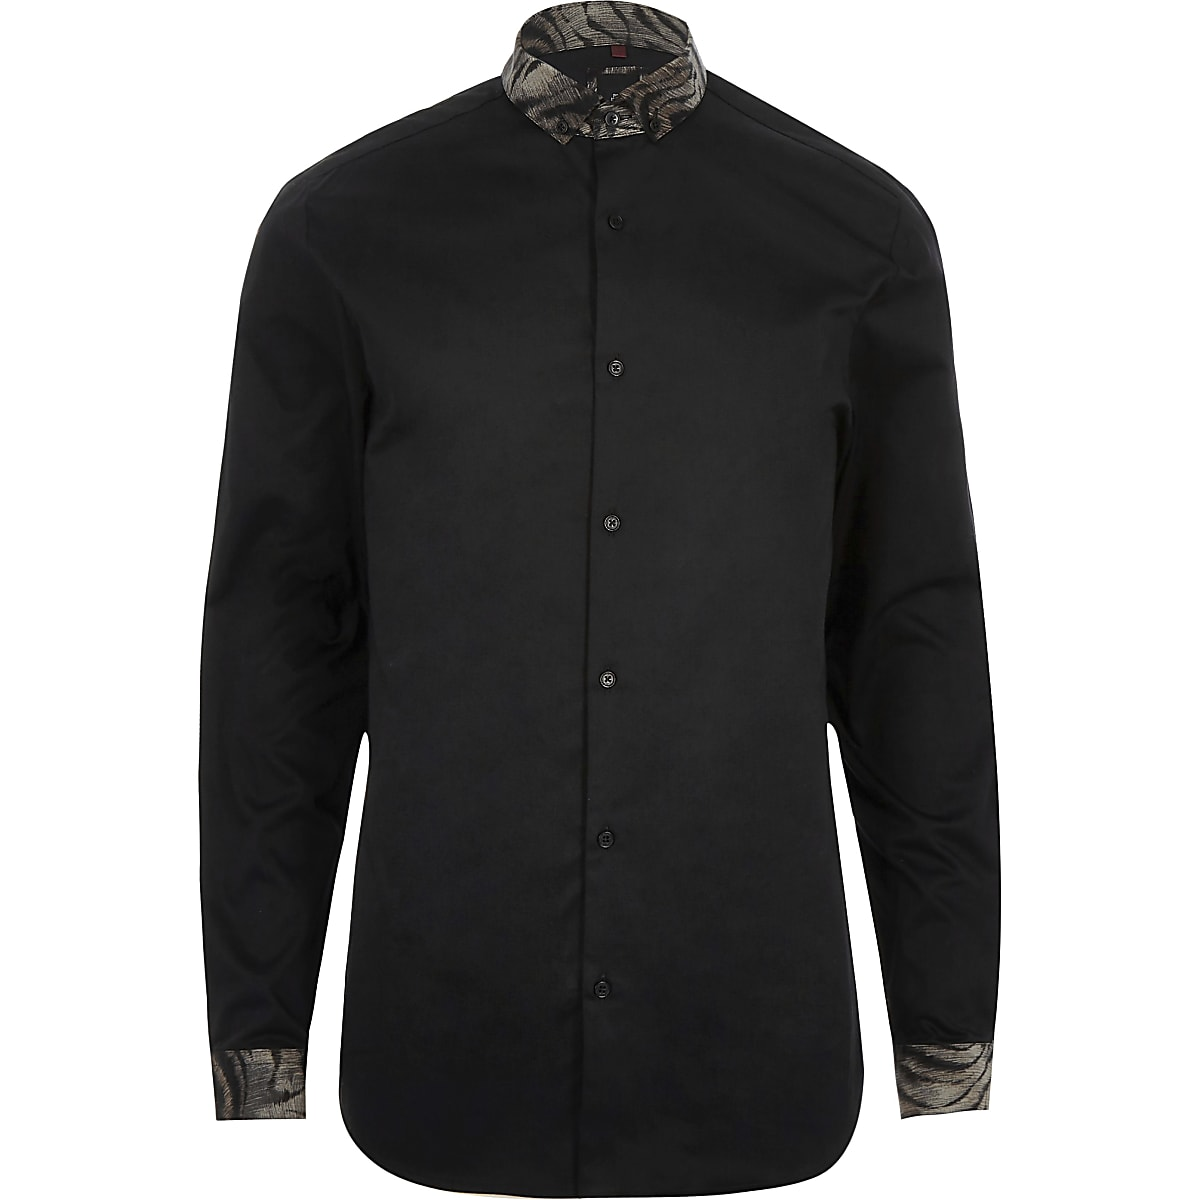 1180f7f08b50 Black leopard collar long sleeve shirt - Long Sleeve Shirts - Shirts ...